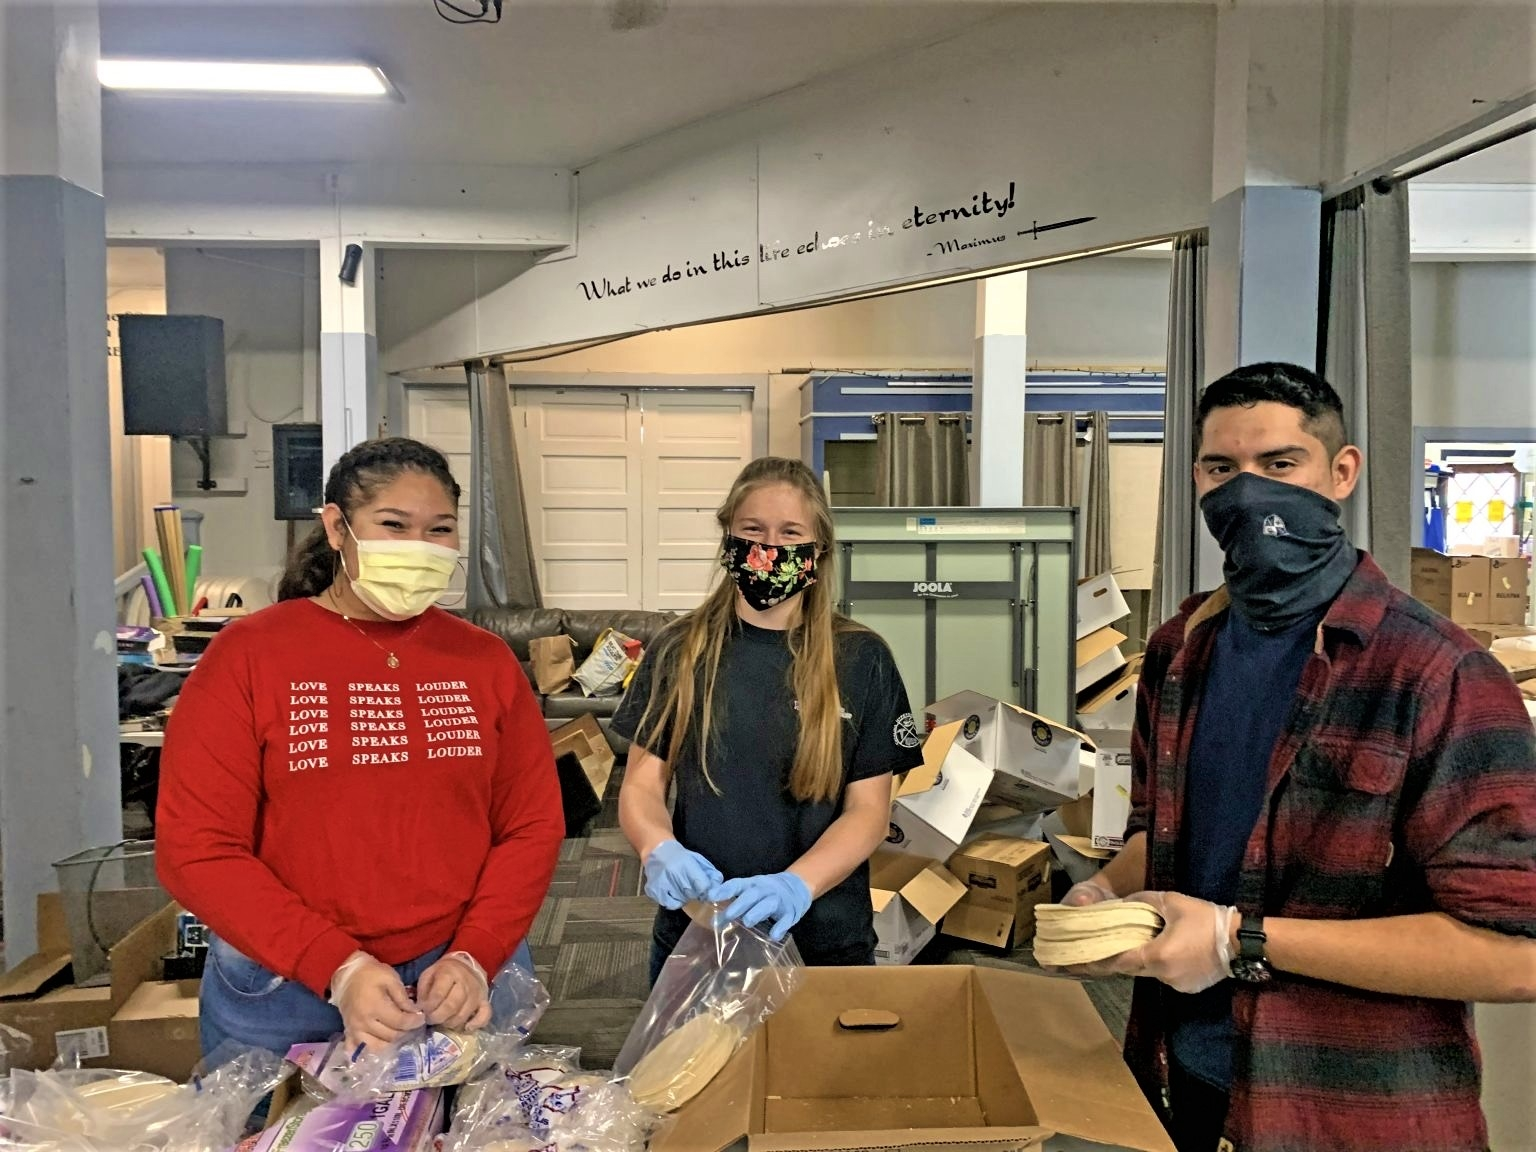 2020 Edison Scholar Daniel Silva Rios  (right)  and other volunteers help divide and distribute food bags at a community church to give to those in need on Catalina Island during COVID-19.